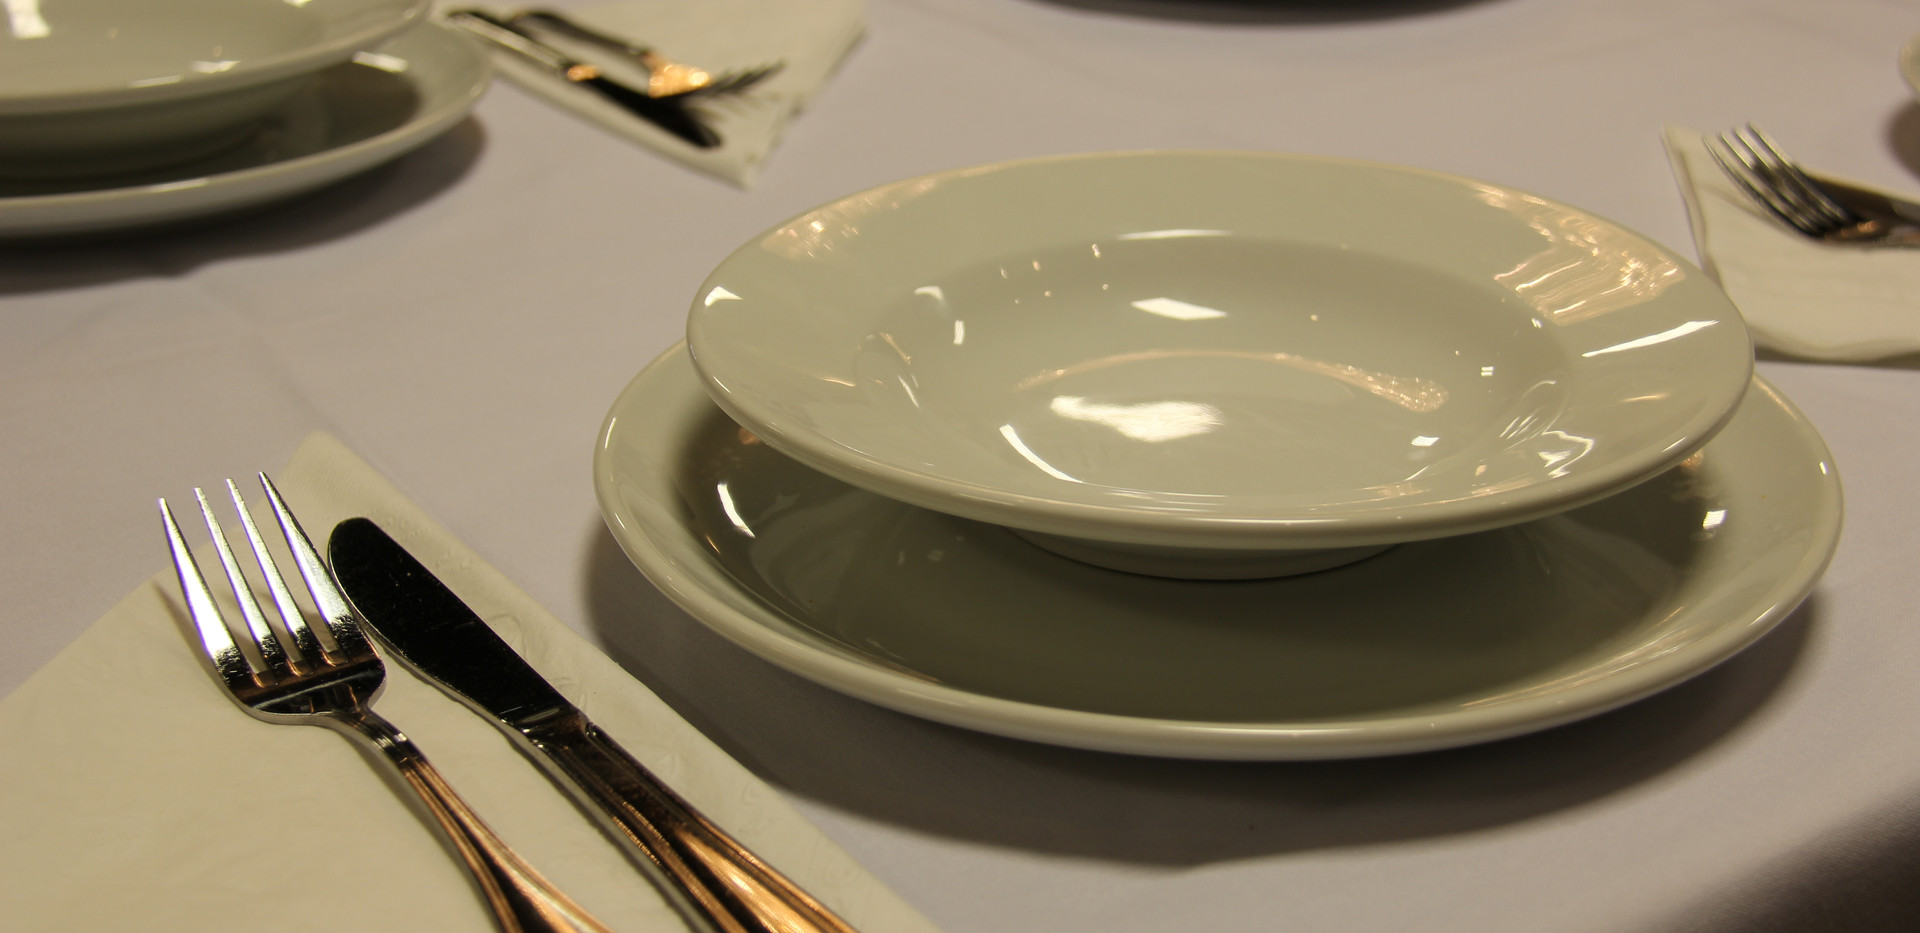 Plates and Silverware Provided